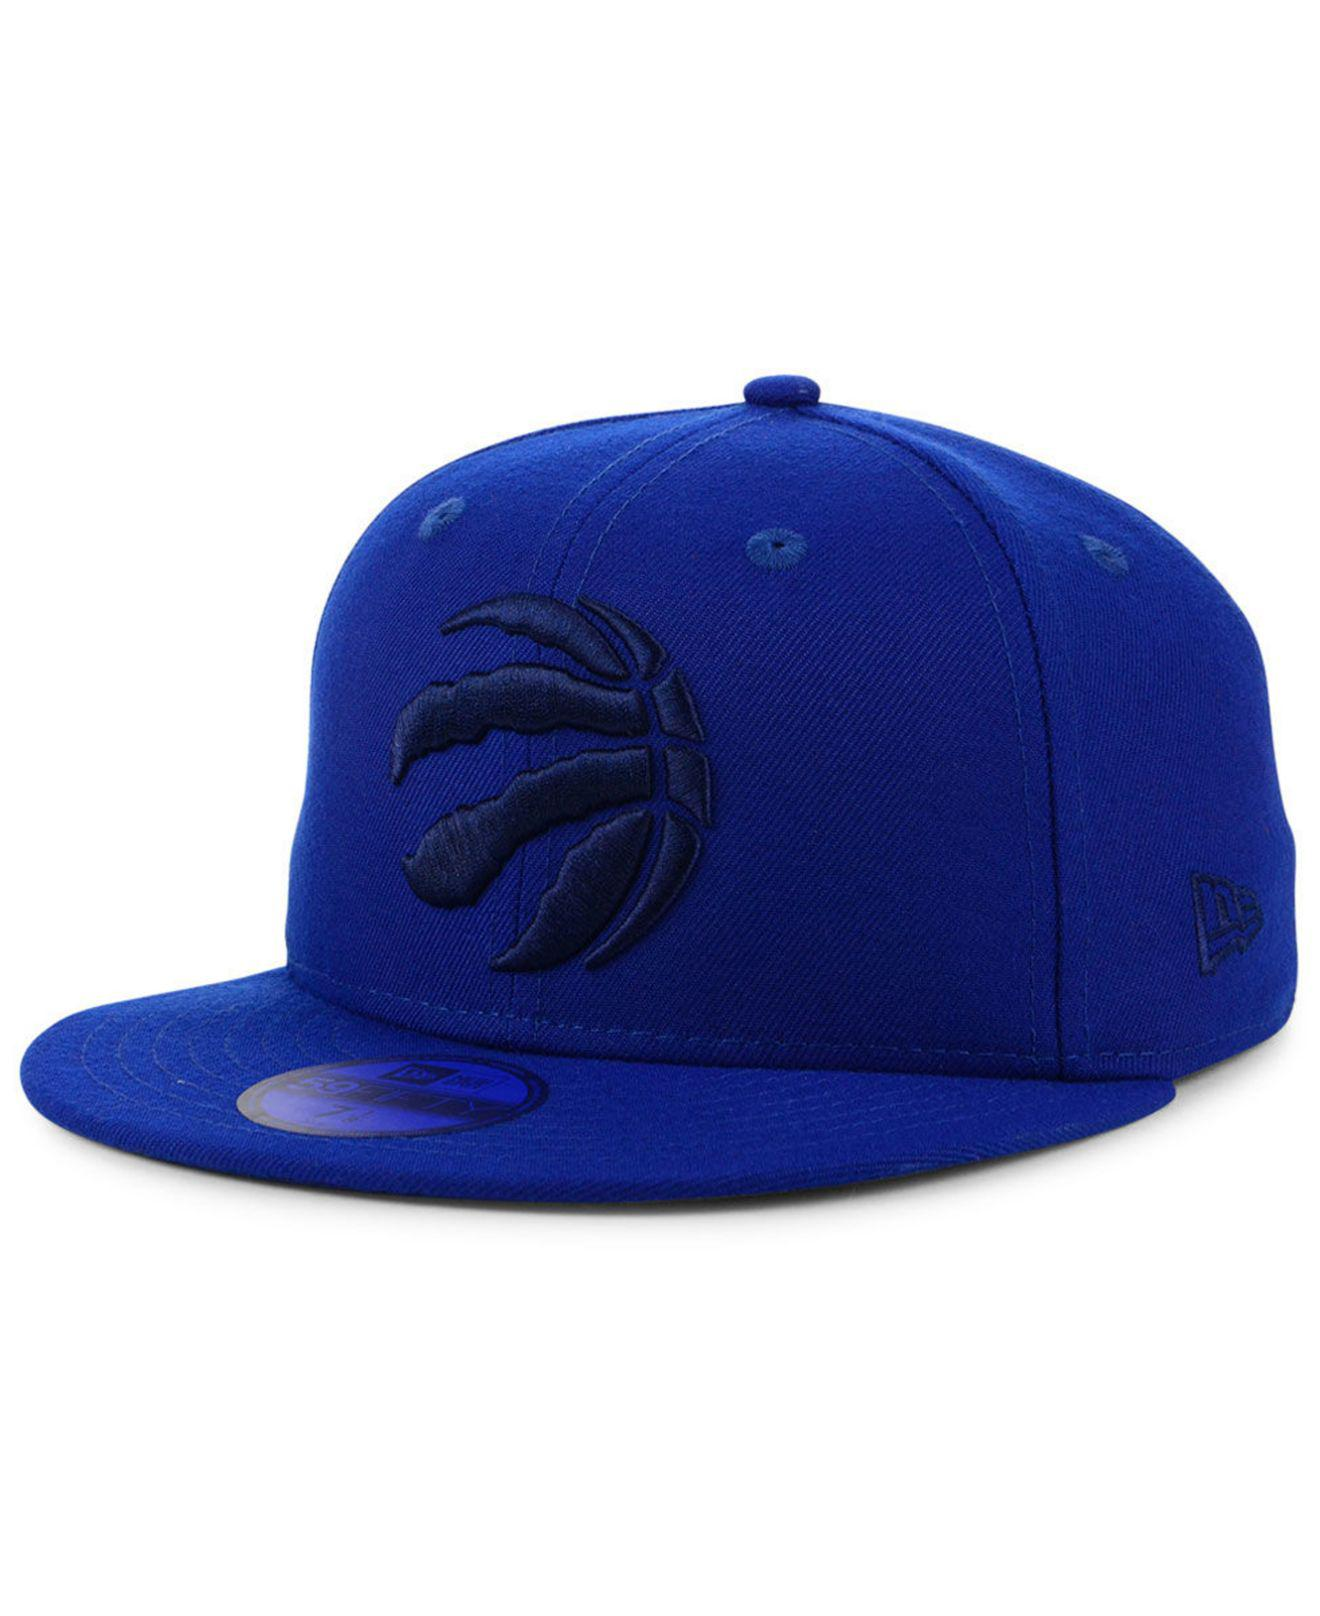 huge selection of 62926 88aa4 ... cheapest ktz. mens blue toronto raptors color prism pack 59fifty fitted  cap acd68 1c2b3